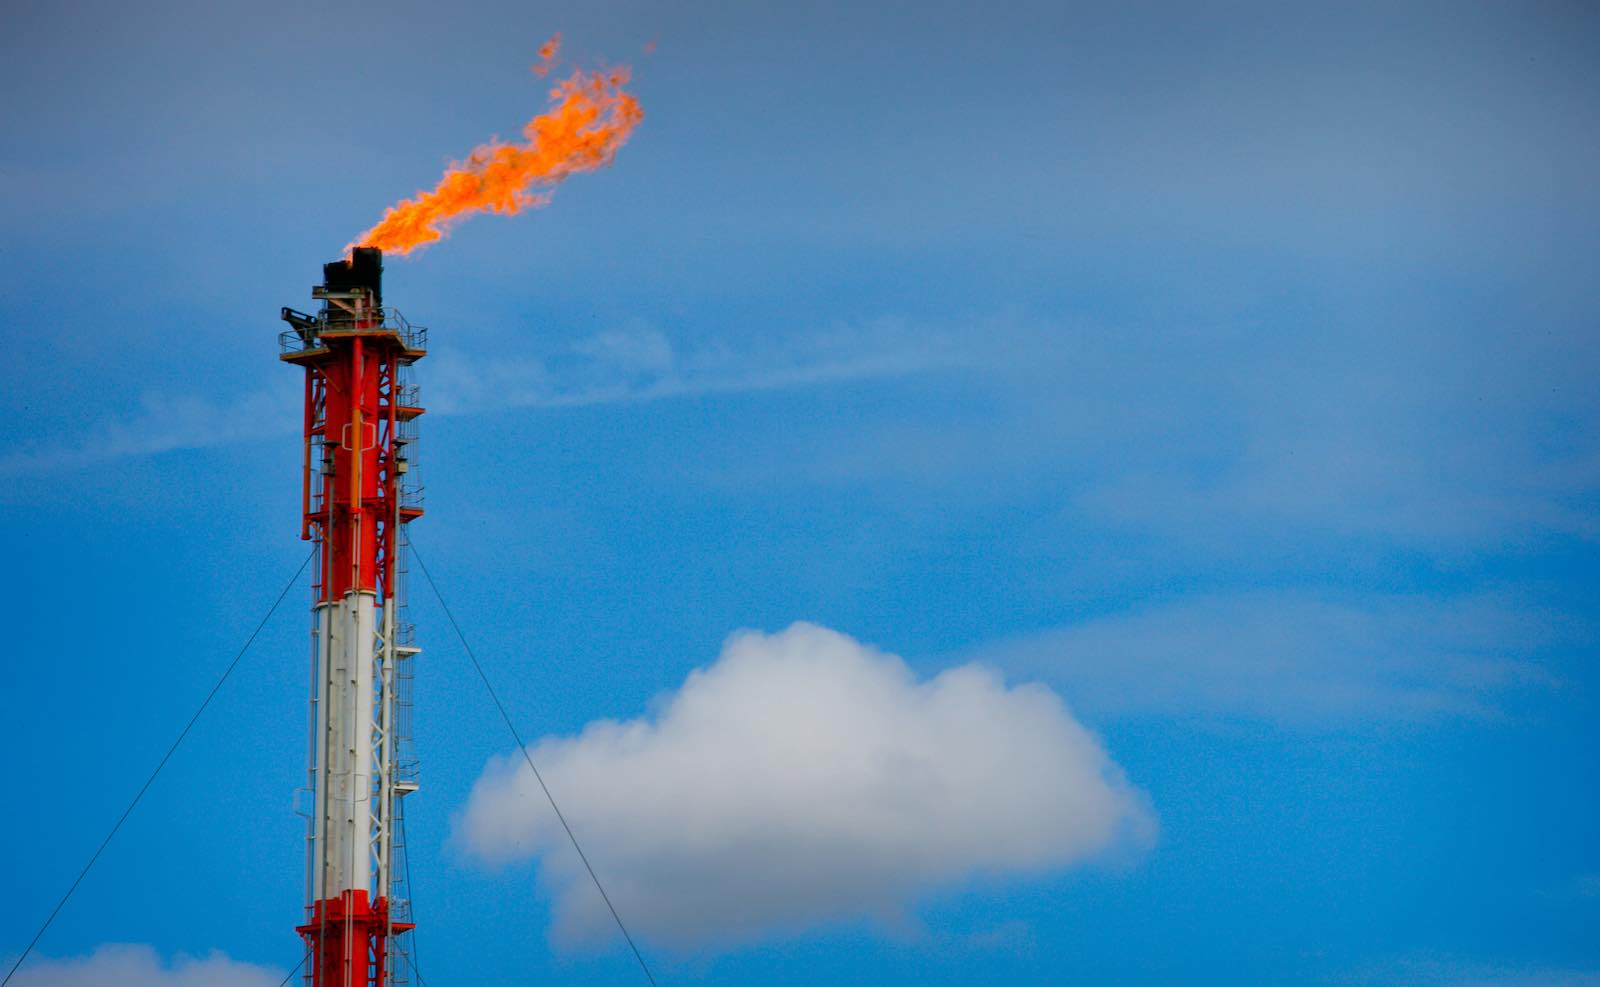 Queensland's Curtis Liquefied Natural Gas project site (Photo: Patrick Hamilton via Getty)